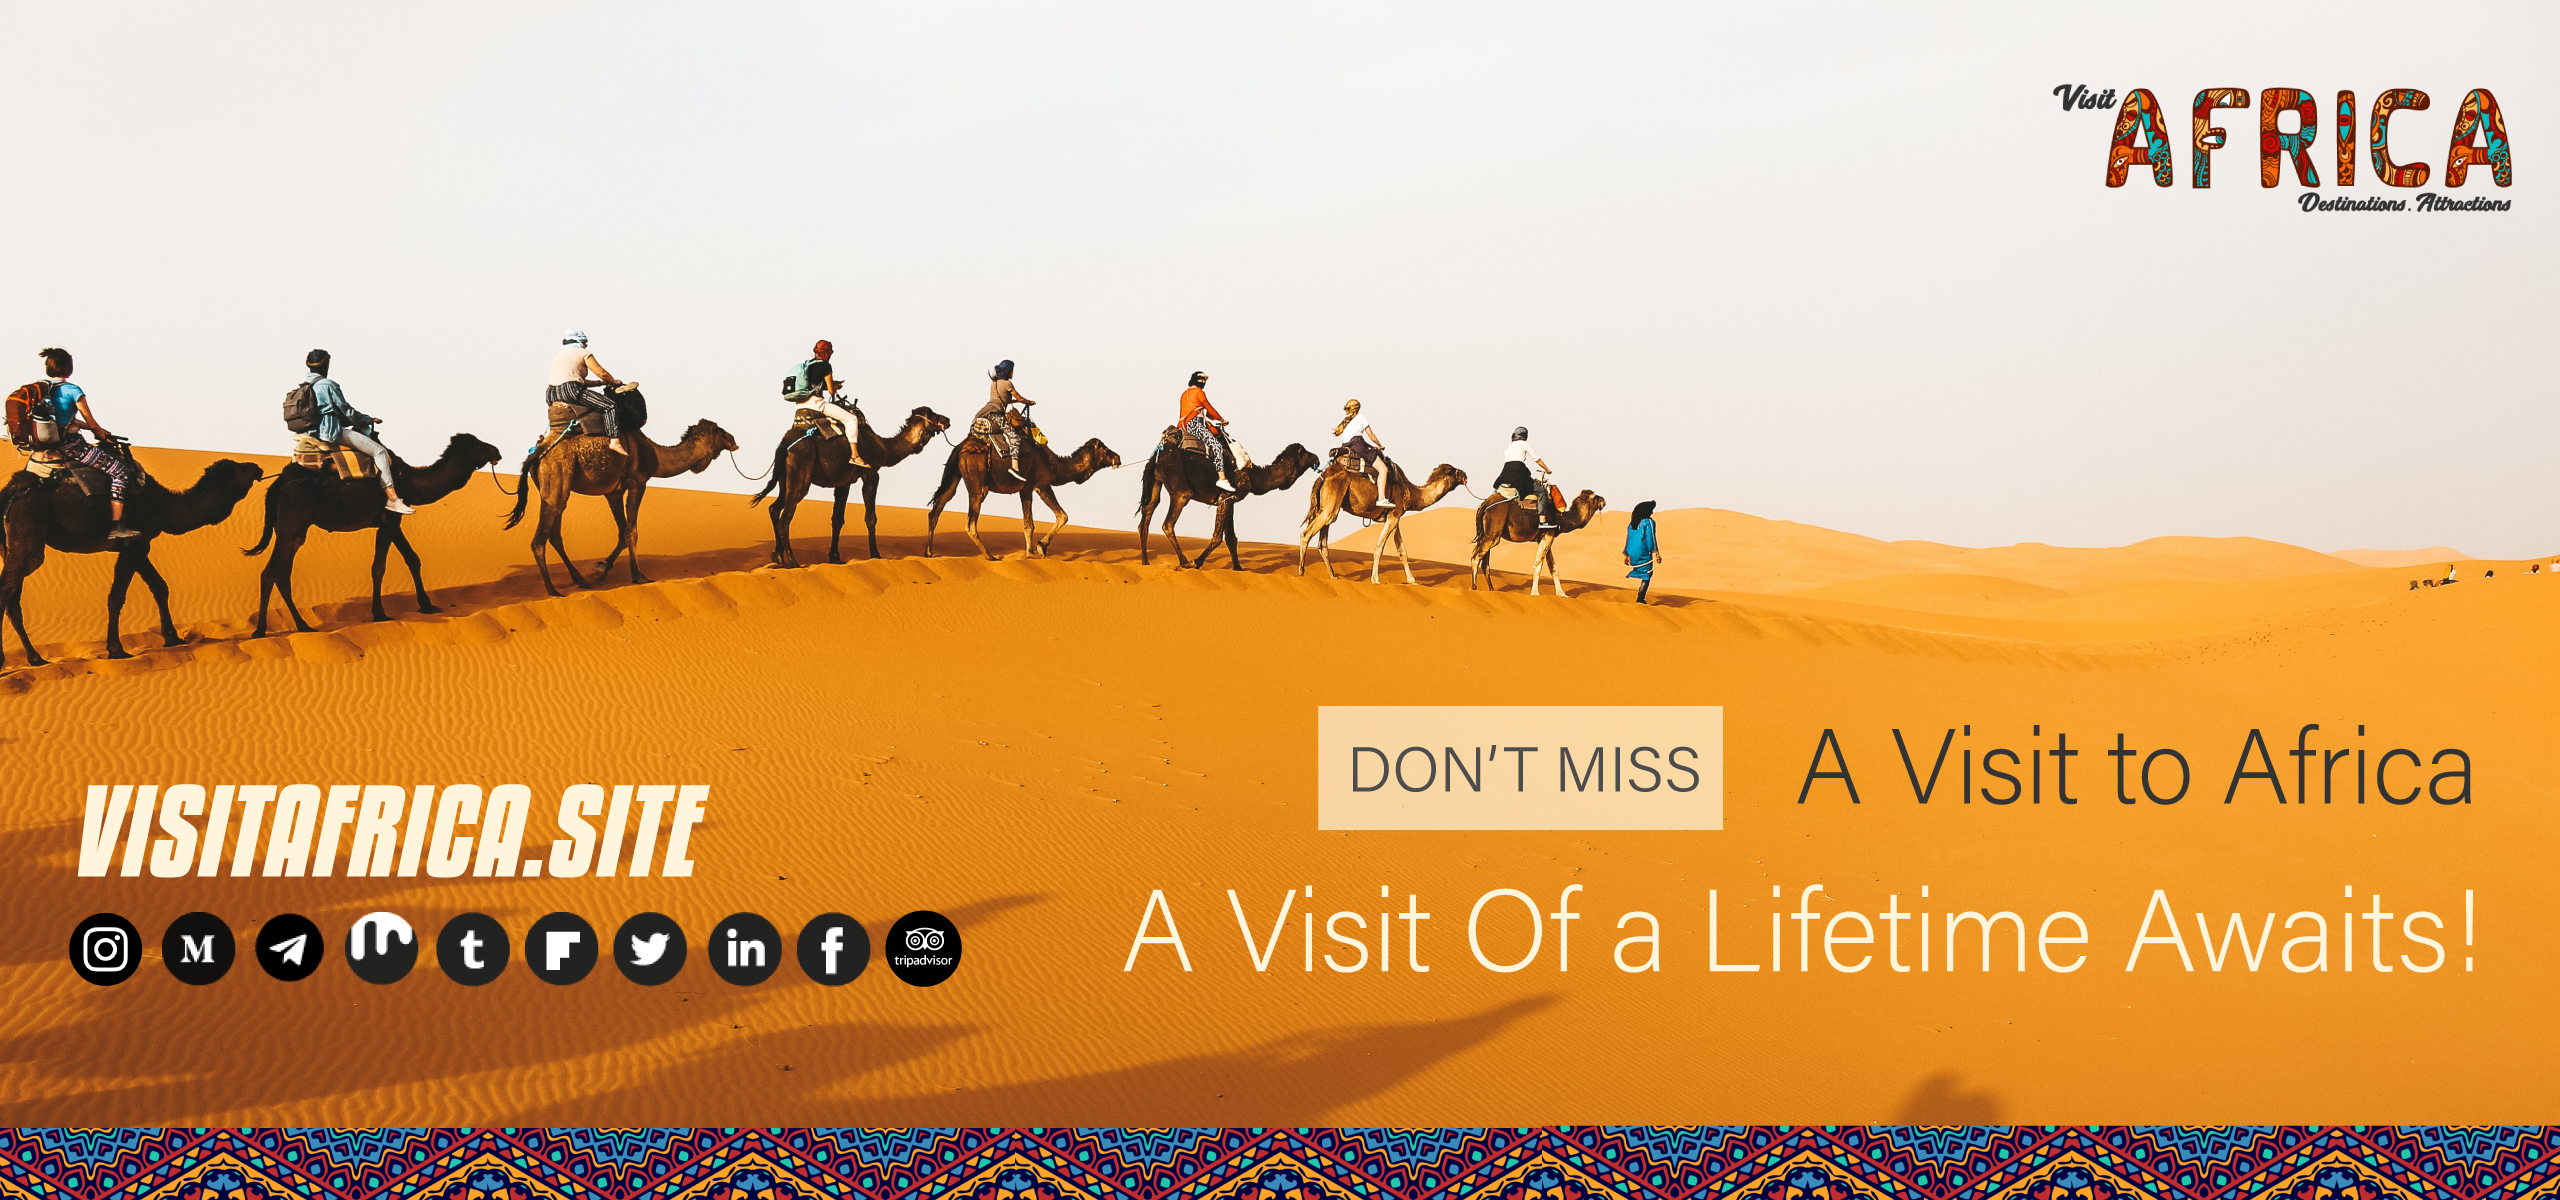 Visit Africa Official Site - Ultimate Tourism and Travel Destination